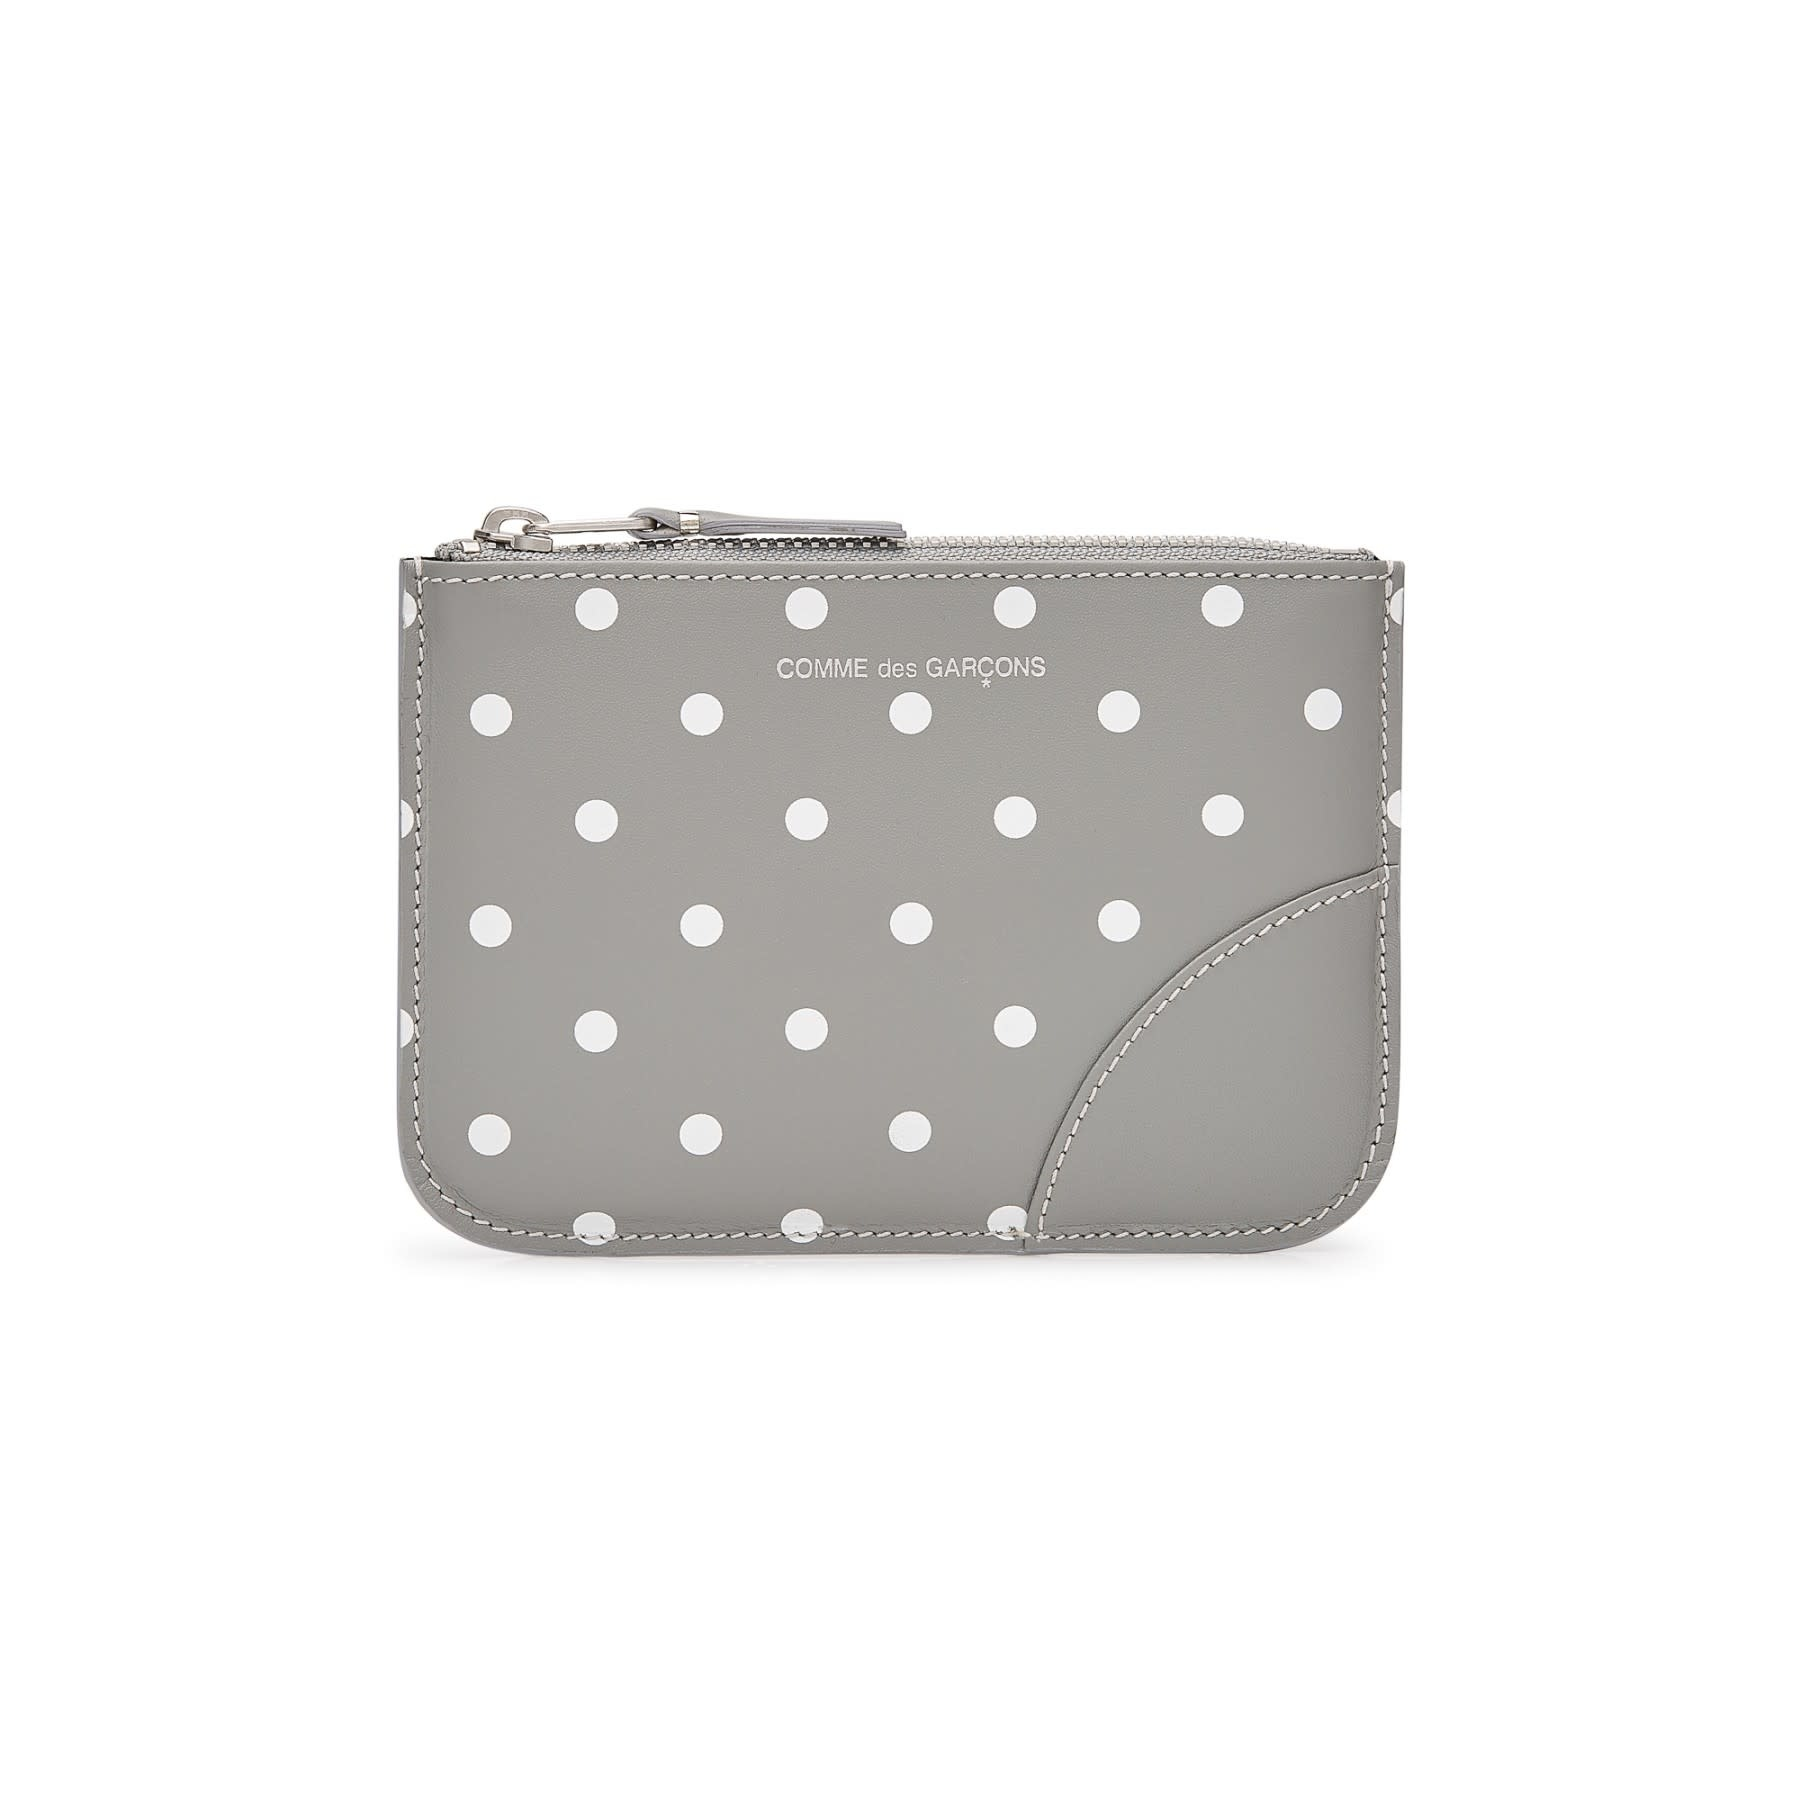 COMME des GARÇONS WALLET Small Zip Pouch in Grey Polka Dot  SA8100PD